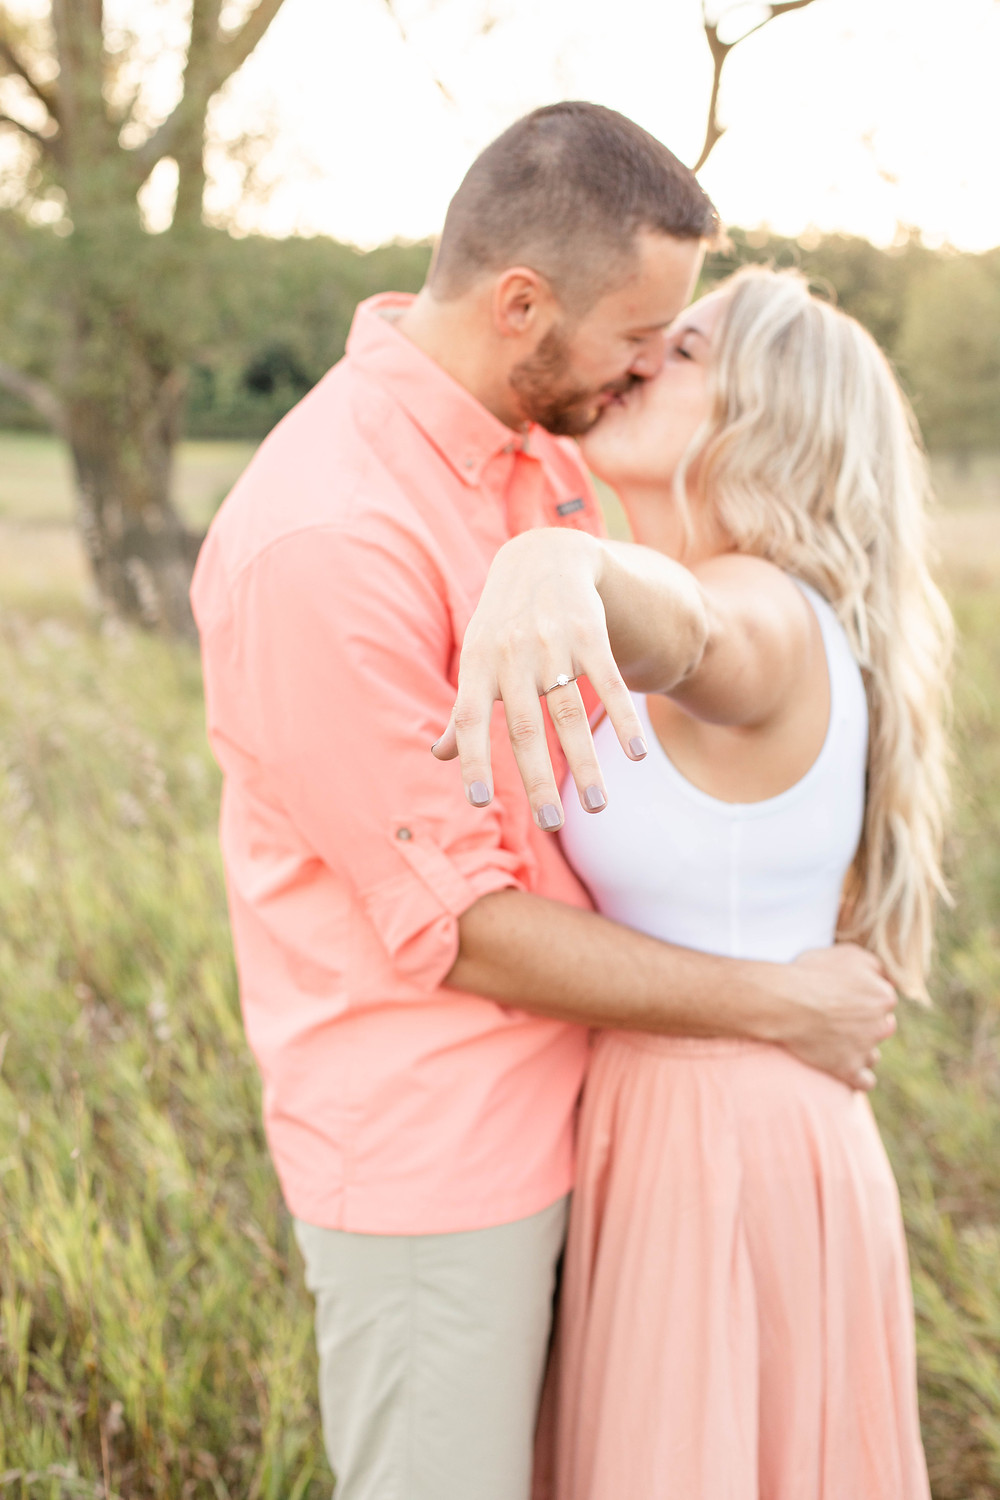 Engagement Photos Al Sabo Land Preserve Kalamazoo Michigan Open Field cute couple smiling at eachother holding out engagement ring hand